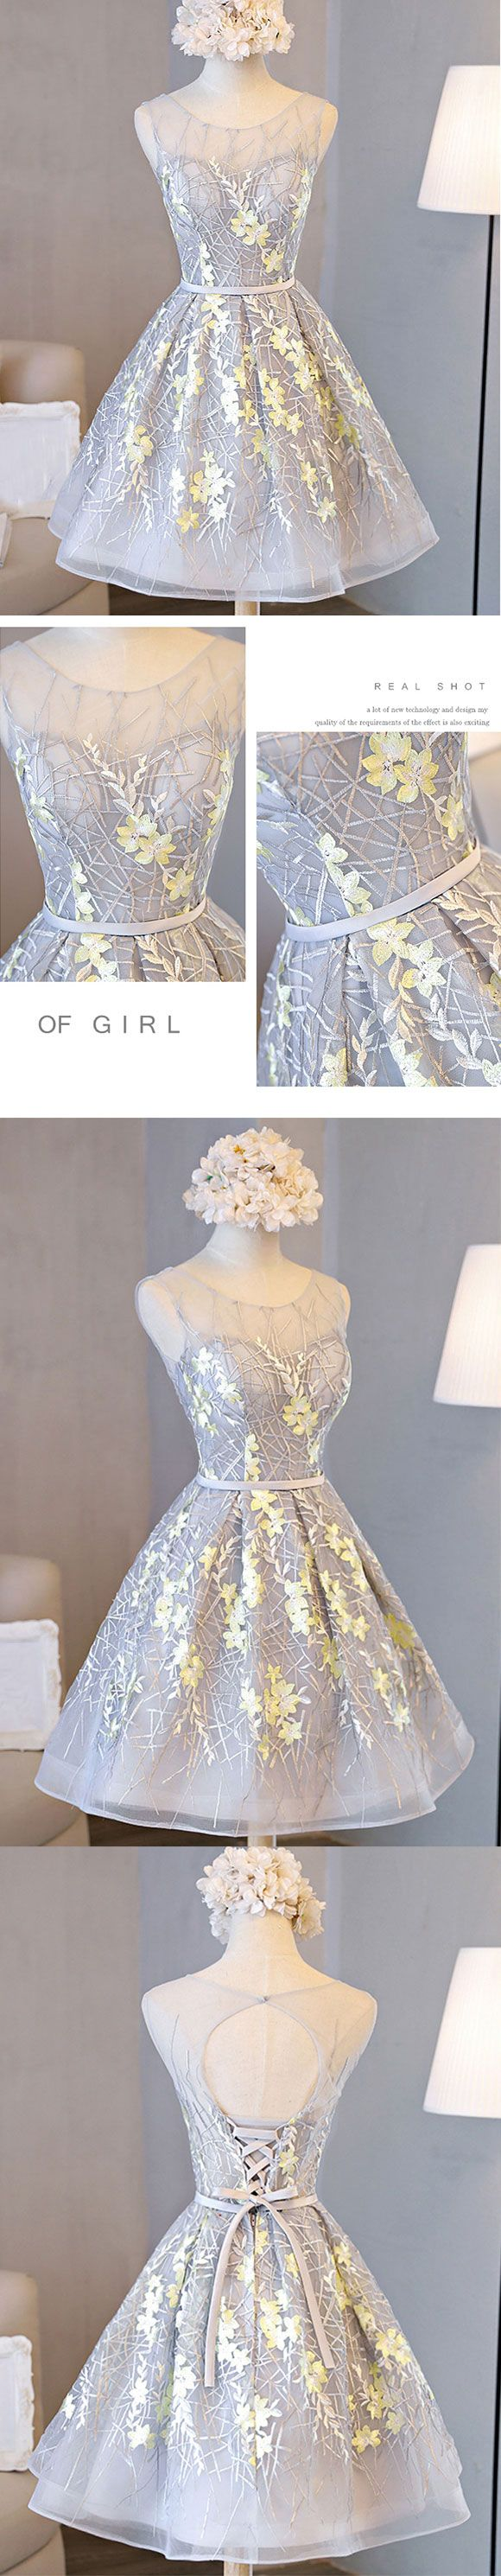 Of girl beautiful a line tulle lace short prom dress homecoming